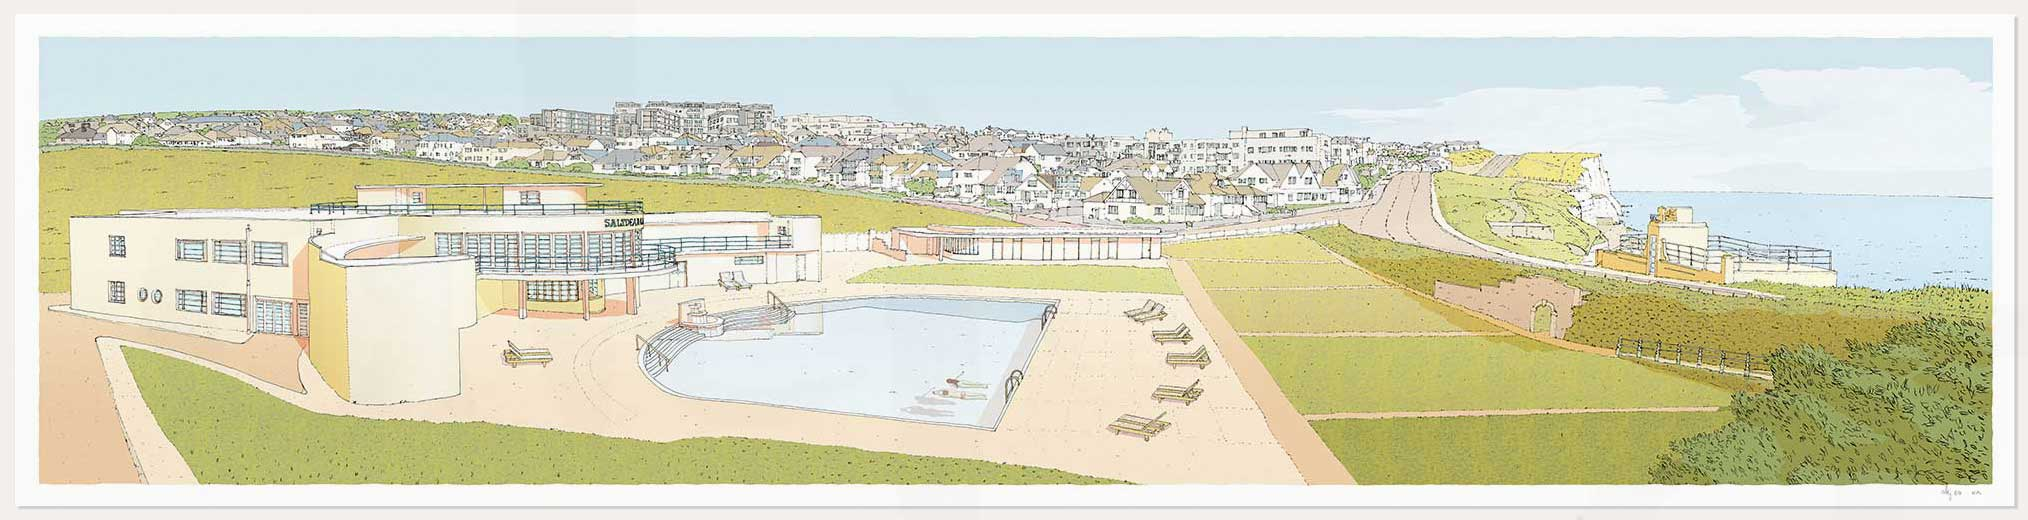 print named Morning Swim Saltdean Lido by the Sea by artist alej ez